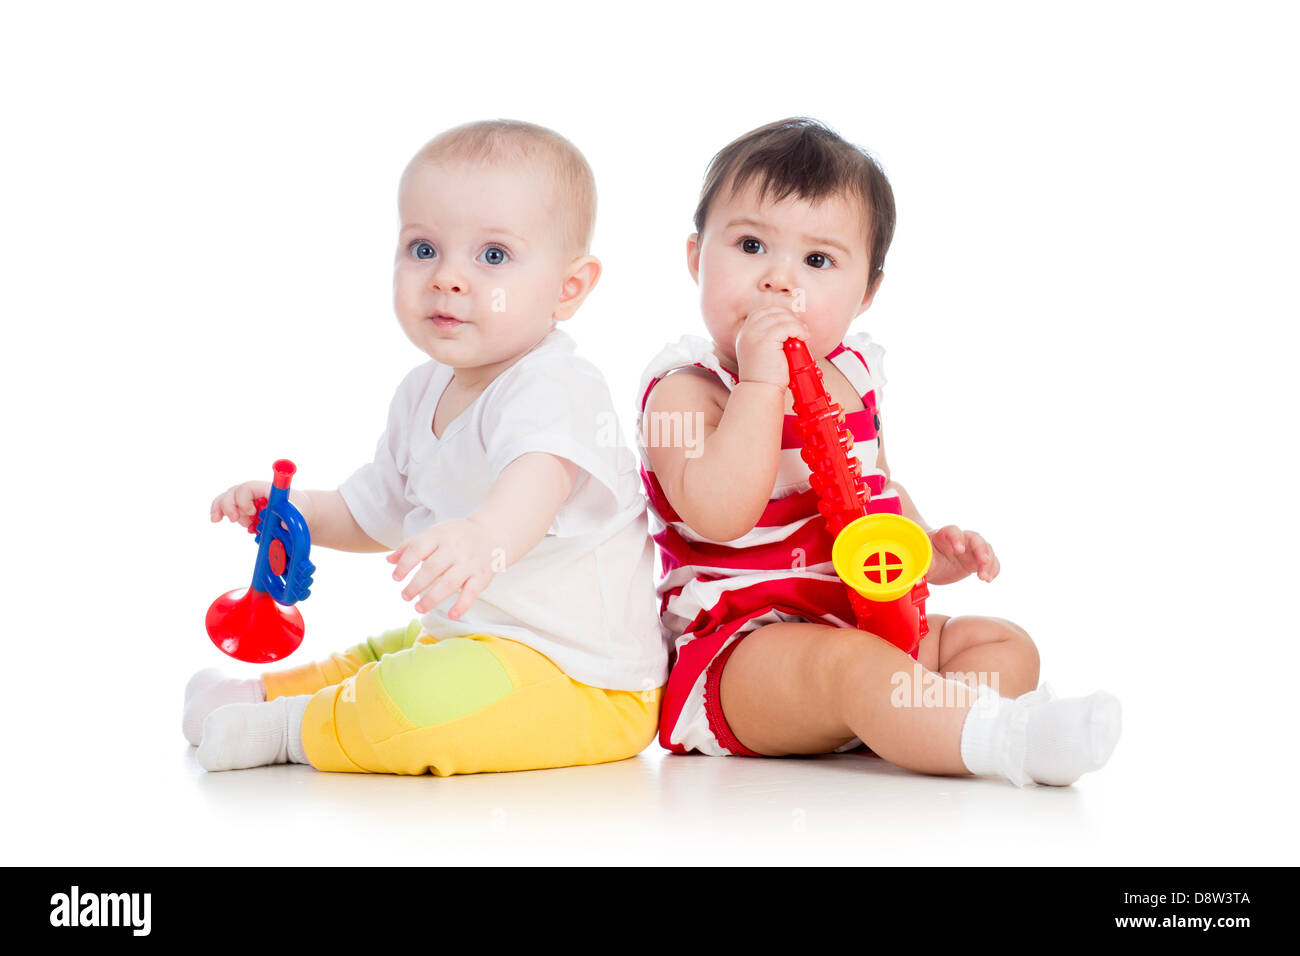 kids girls playing with musical toy - Stock Image